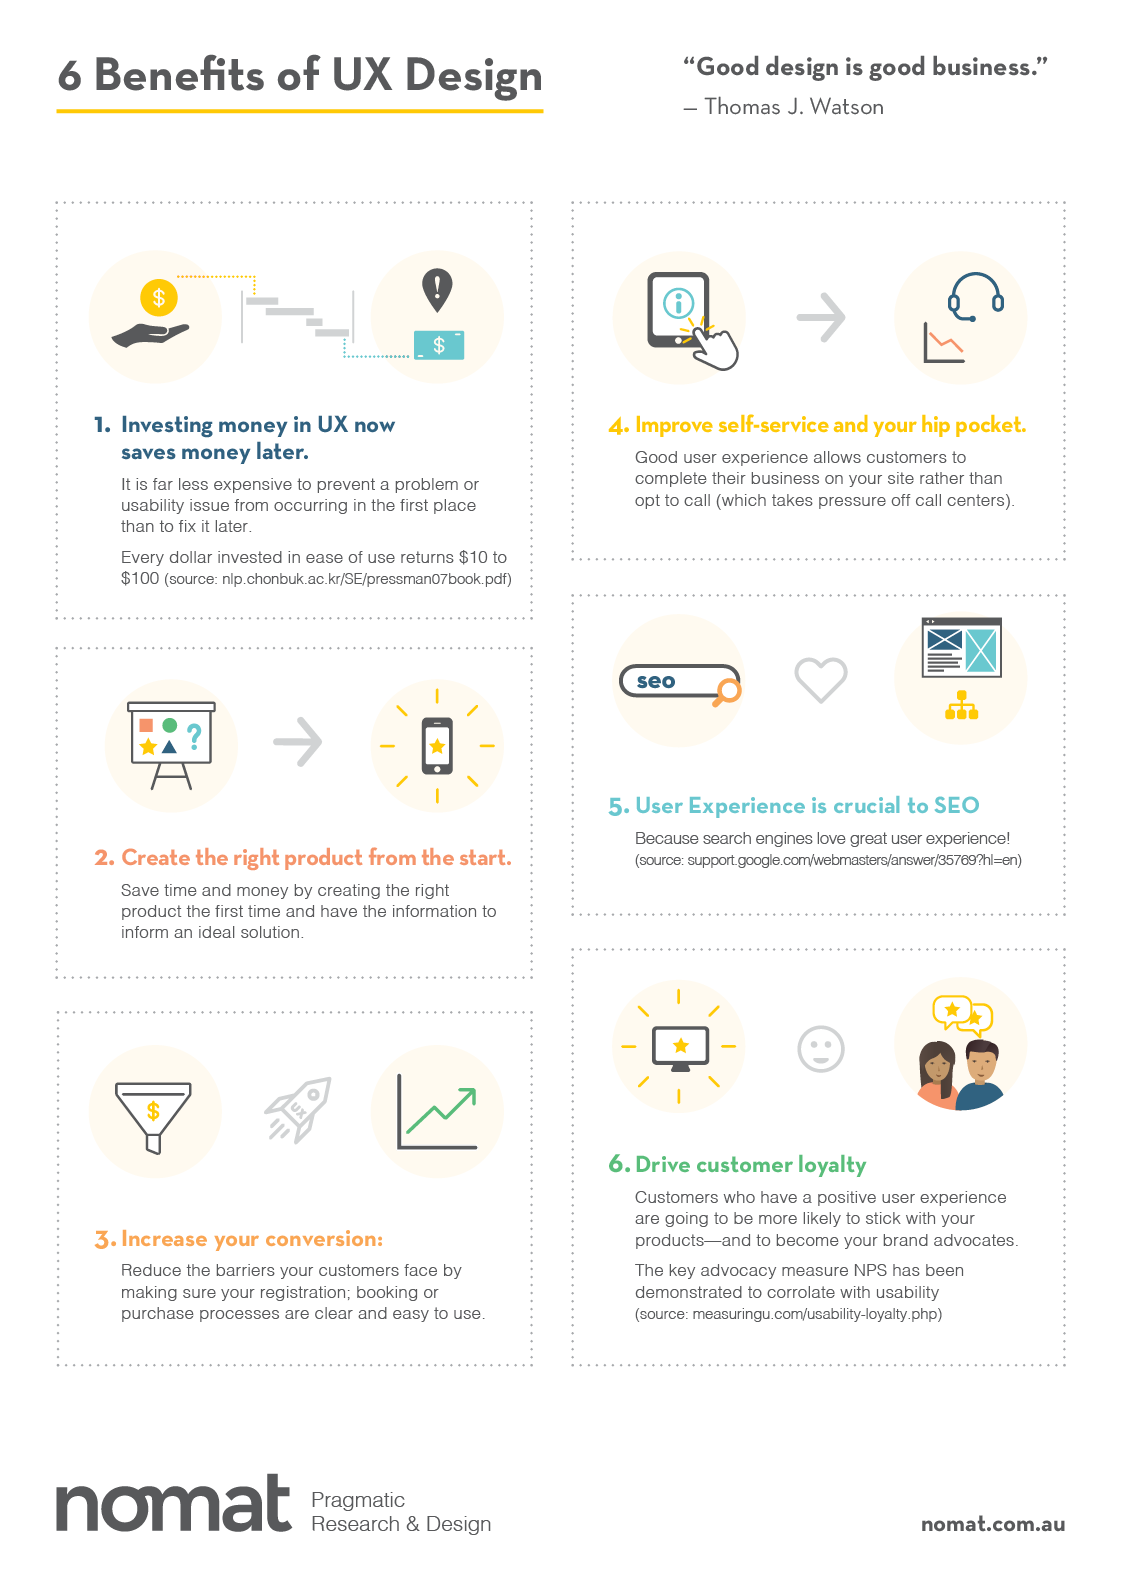 6 Benefits of UX Poster